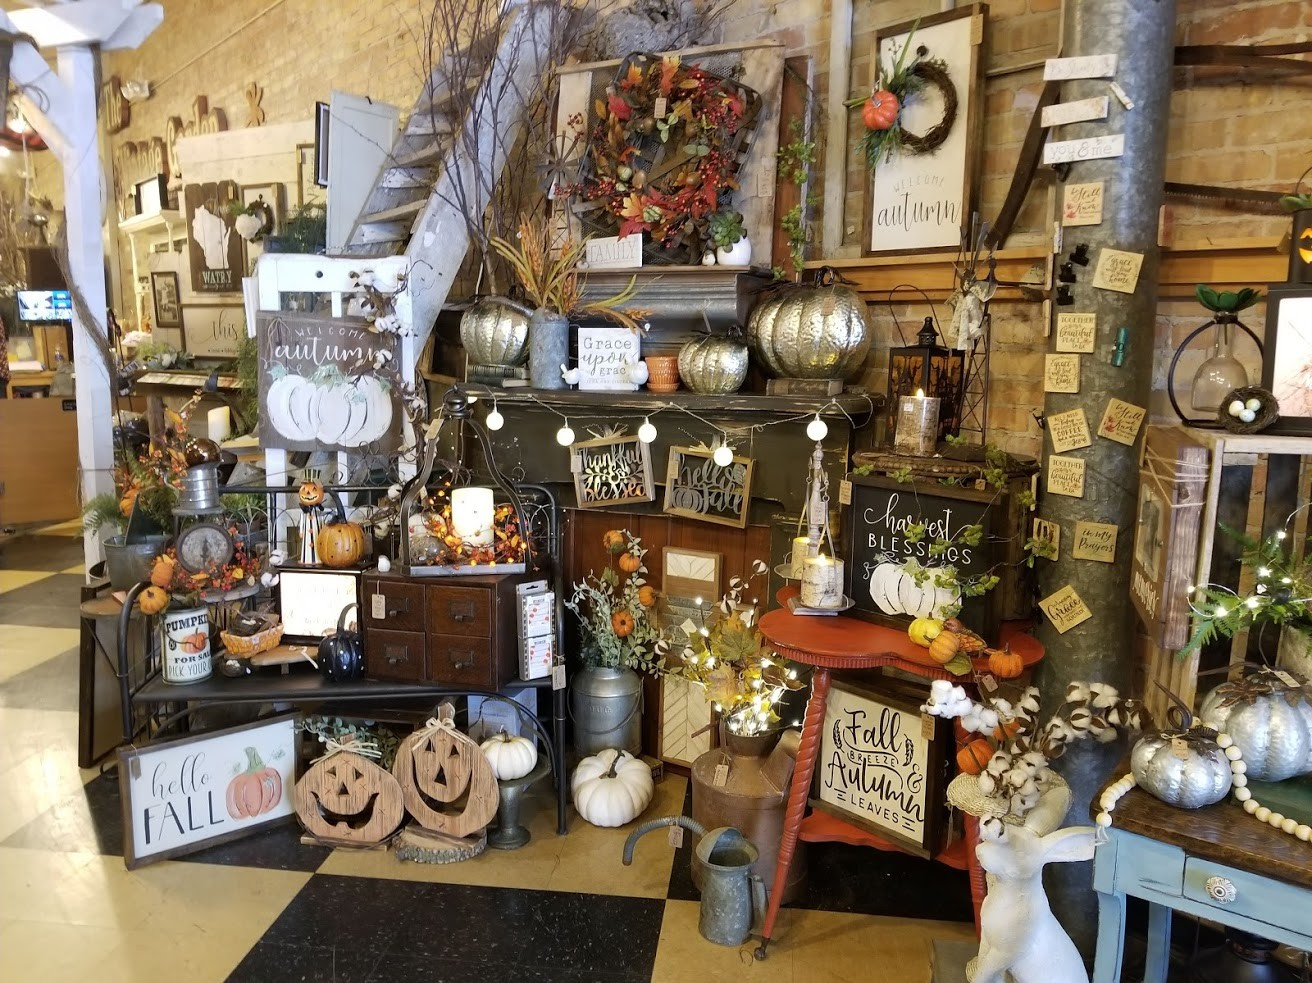 Reclaimed, Painted Furniture & Vintage Inspired Decor!